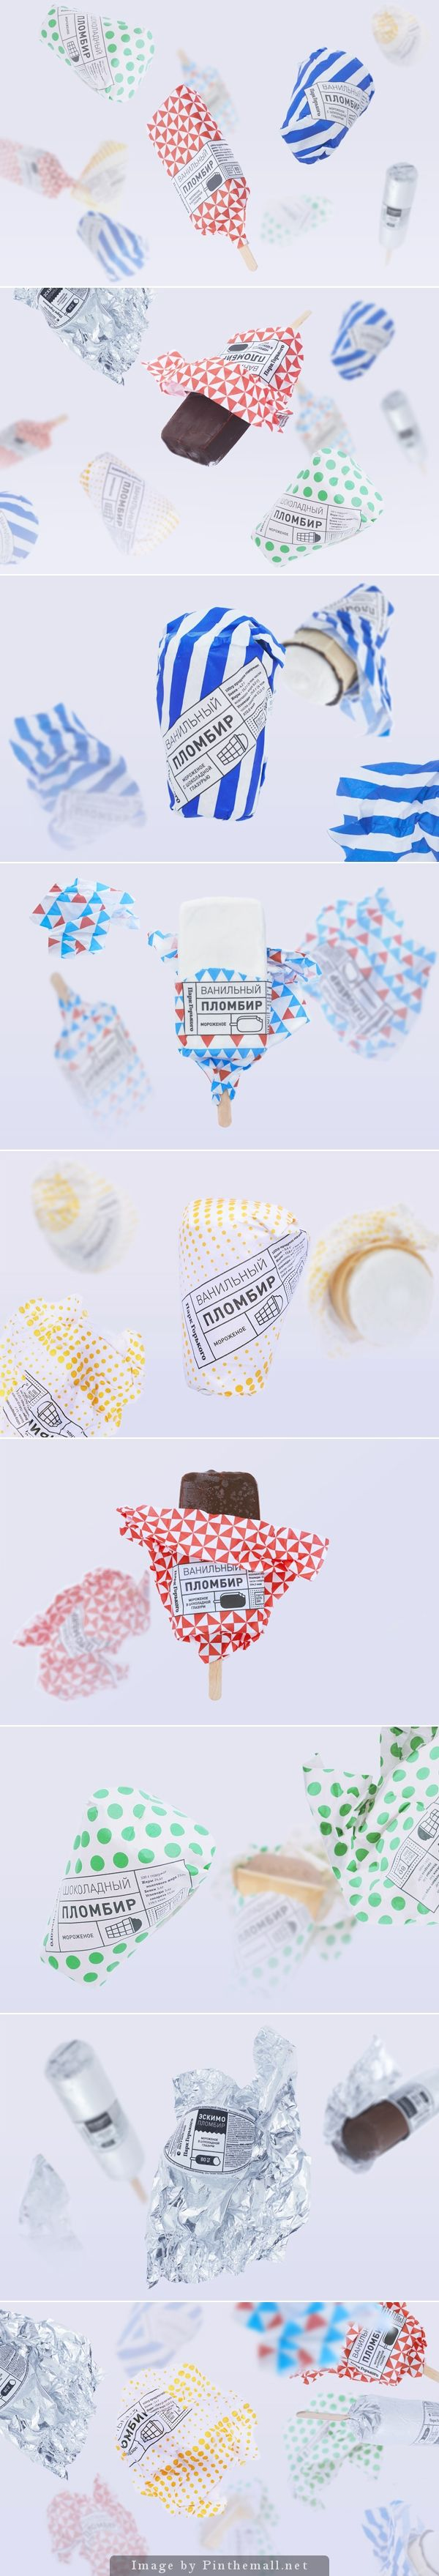 Gorky Park Icecream by Anastasia Genkina. Great ice cream packaging is always popular PD